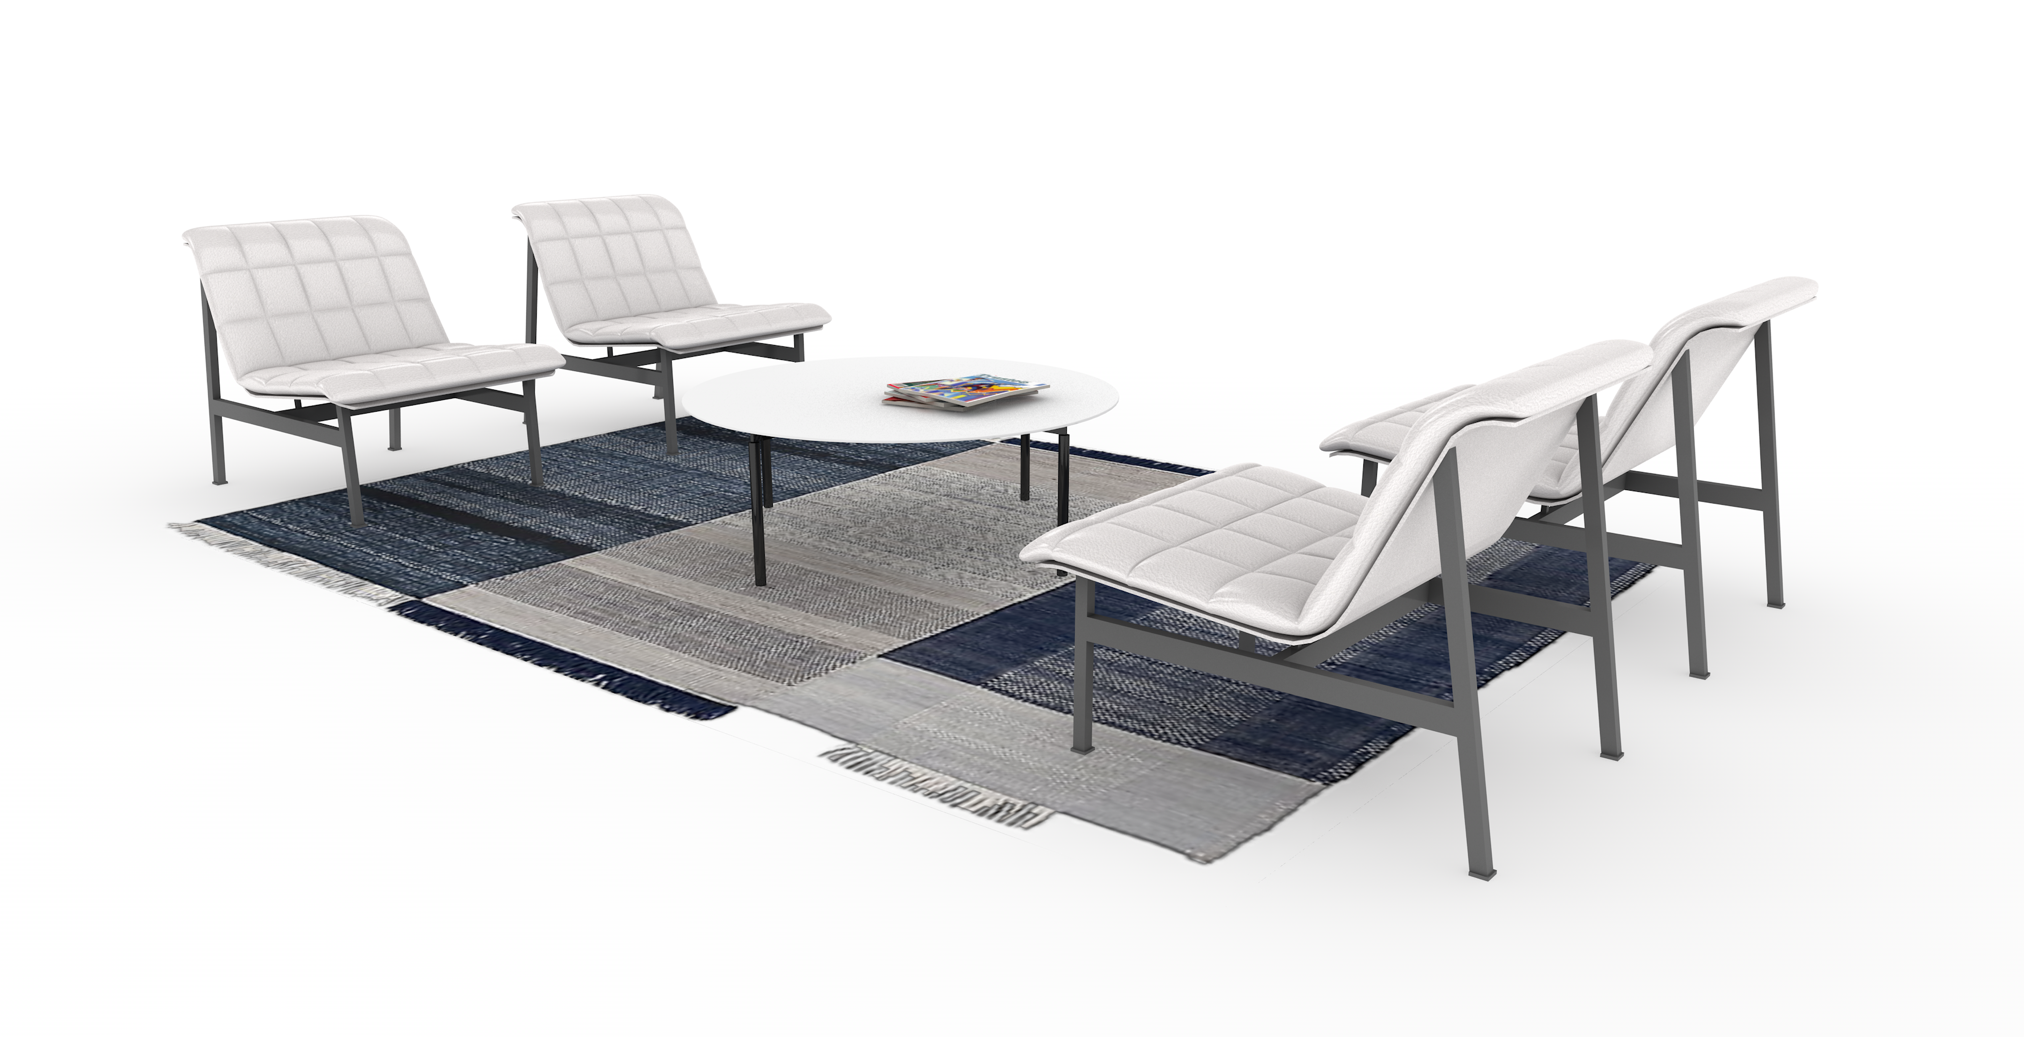 Lounge set created with subdivision